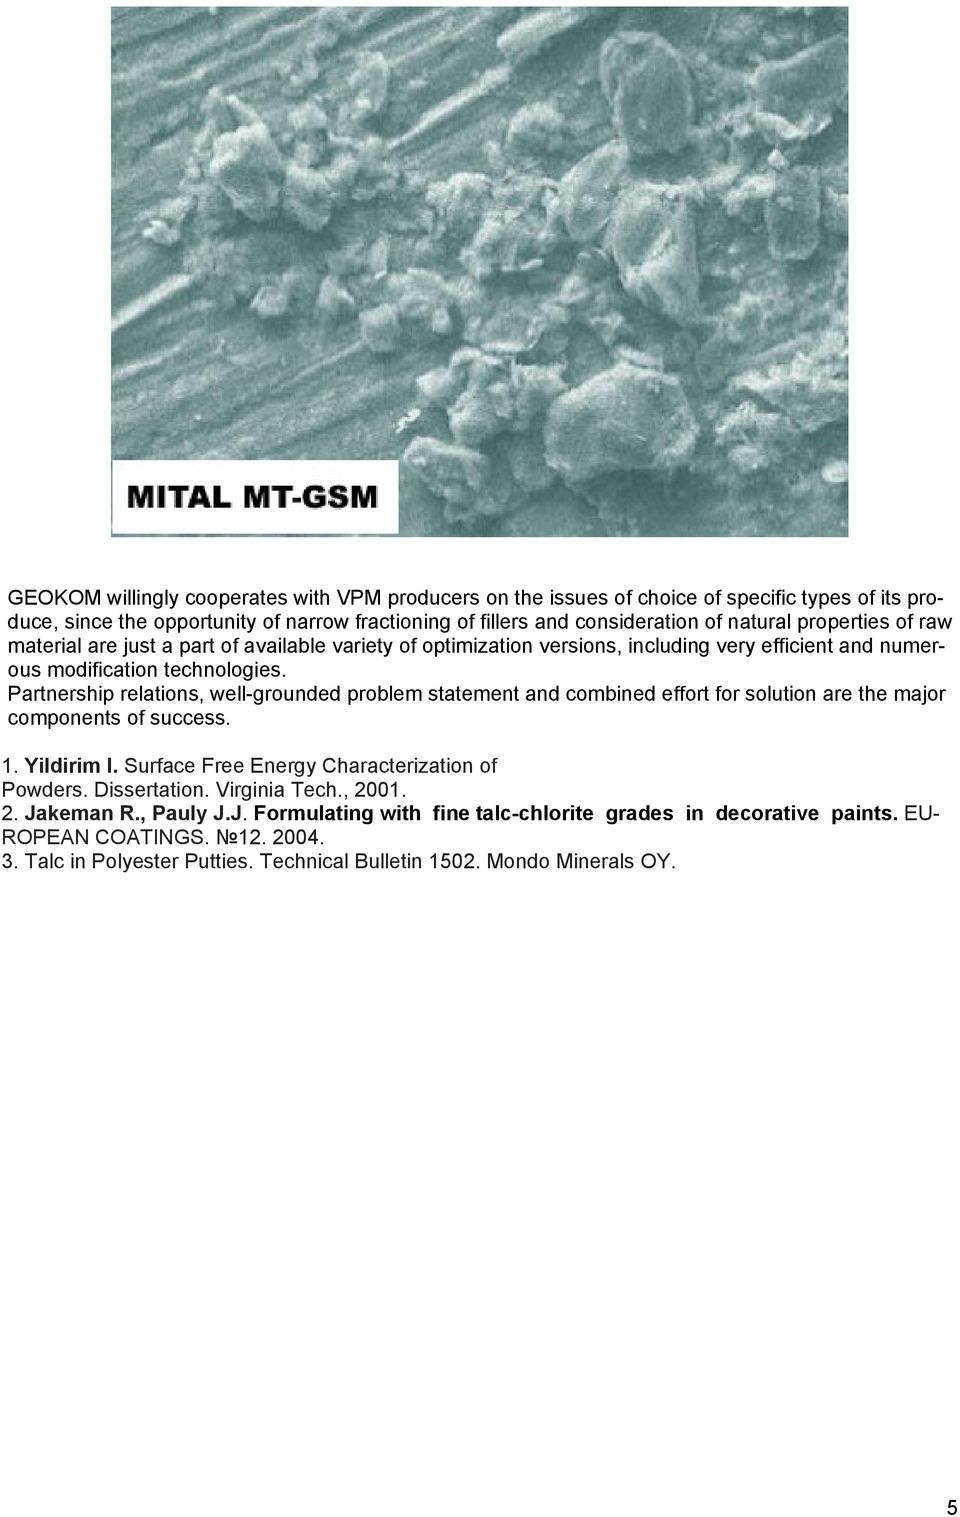 Partnership relations, well-grounded problem statement and combined effort for solution are the major components of success. 1. Yildirim I. Surface Free Energy Characterization of Powders.